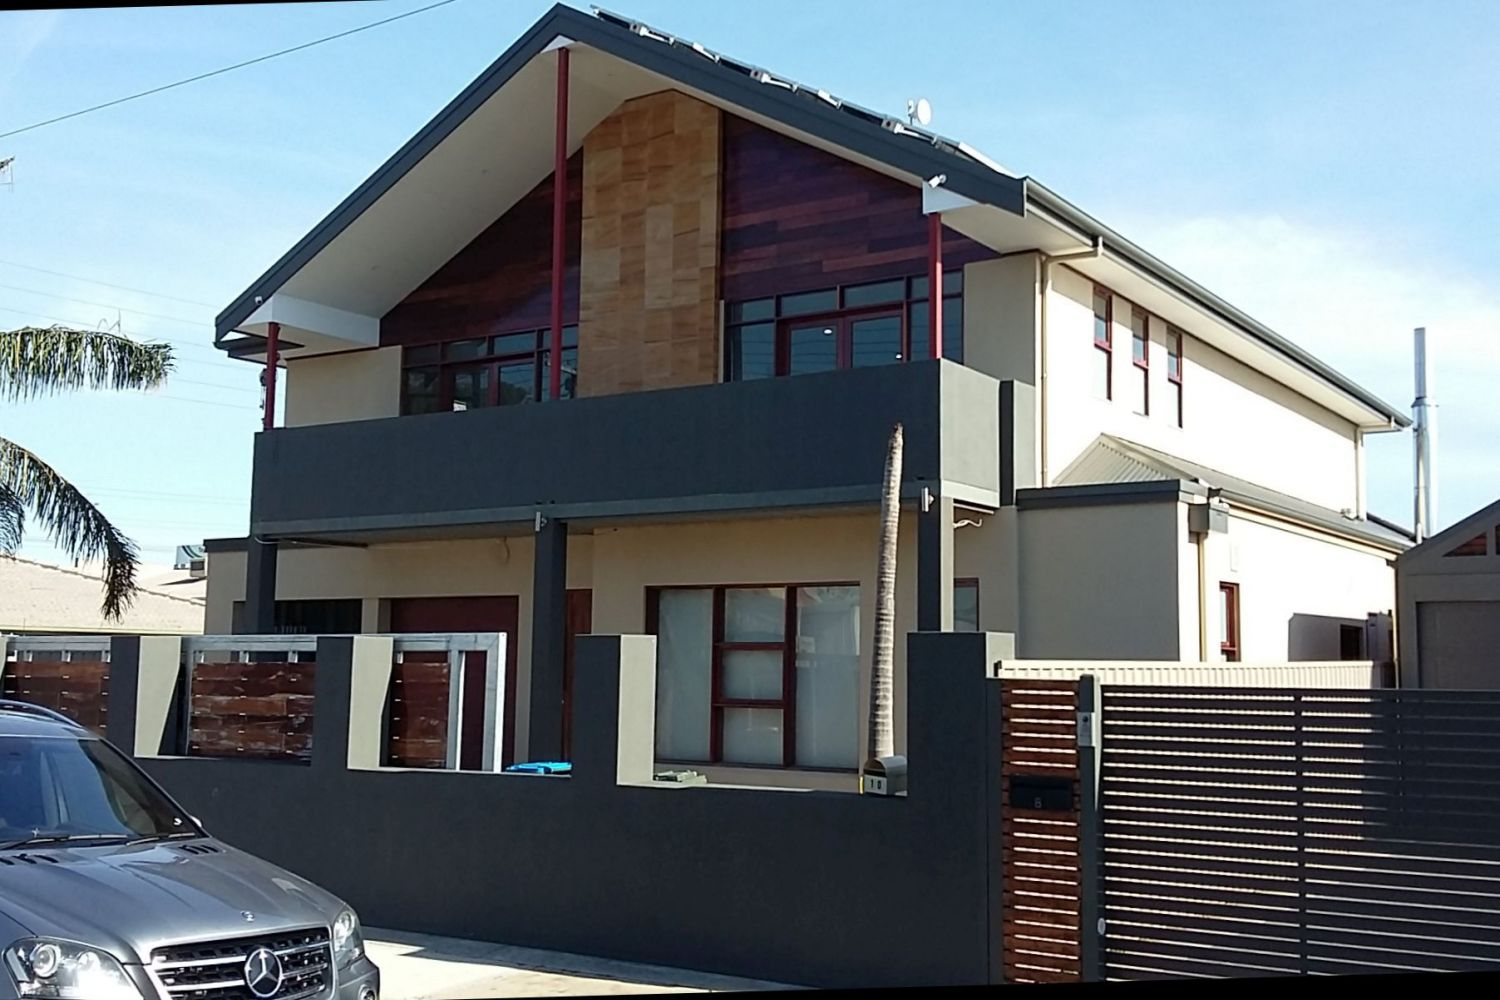 Owner Builder House at Taperoo